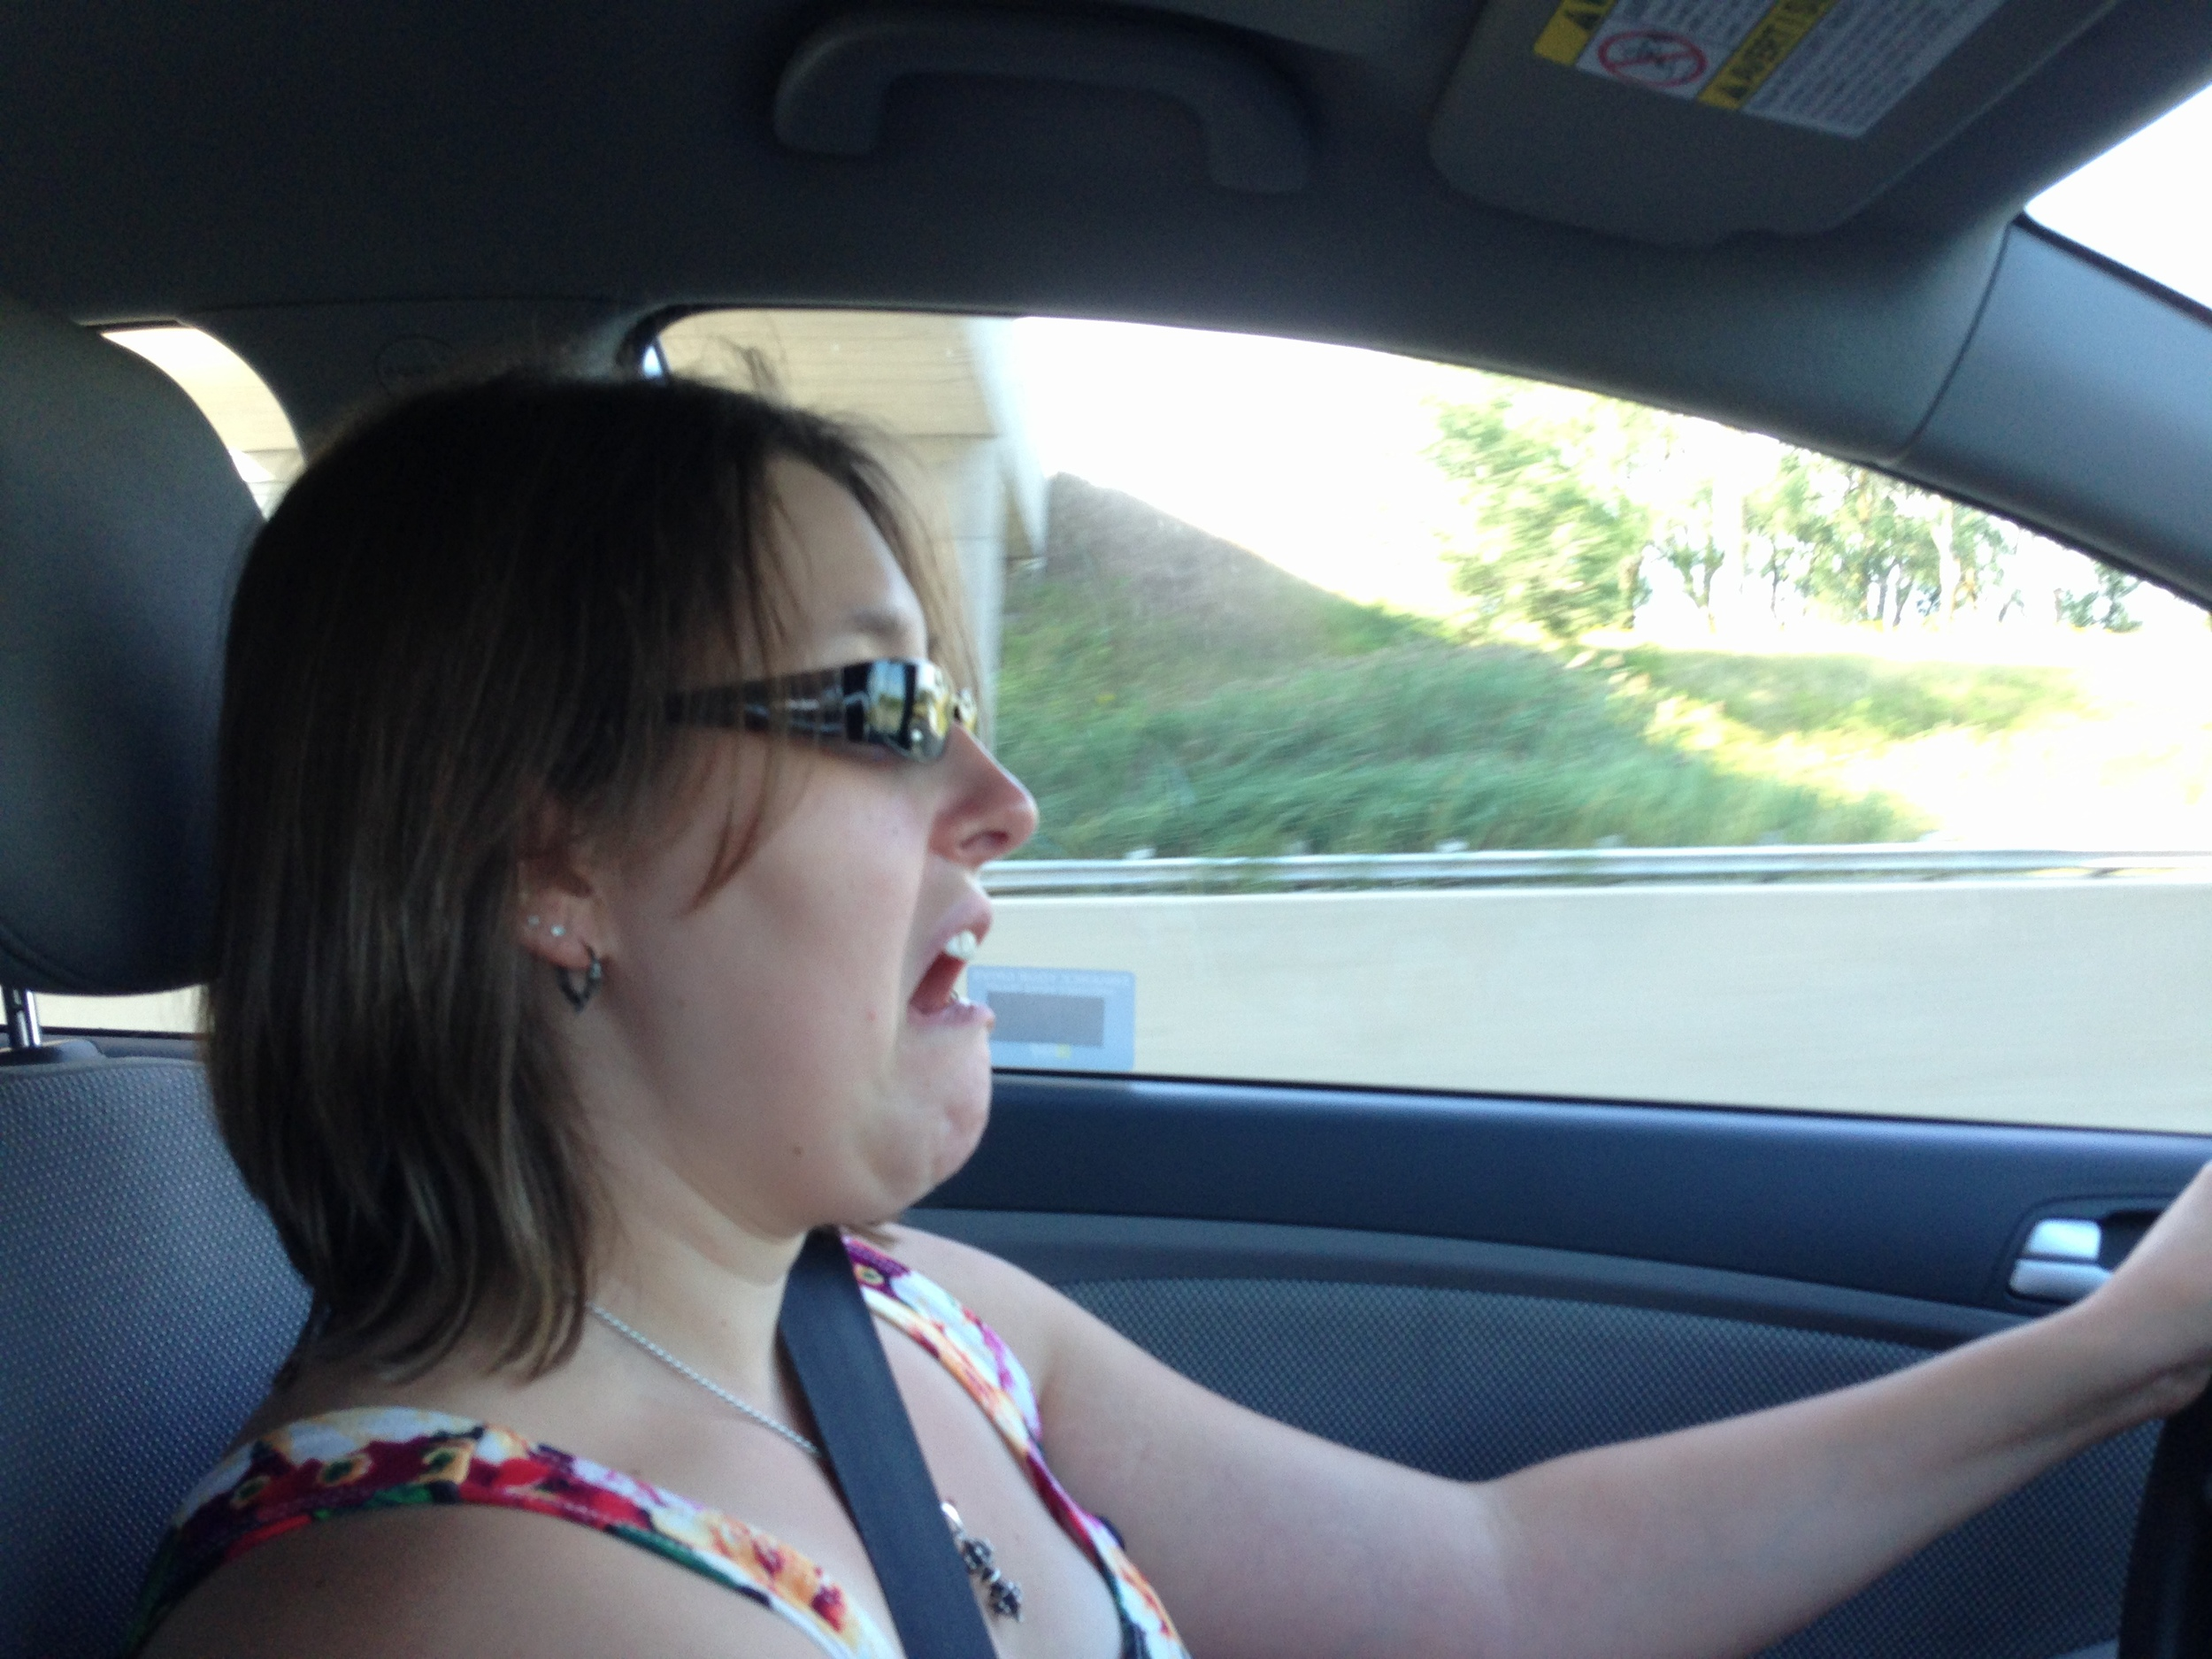 This was my face while driving the 401.